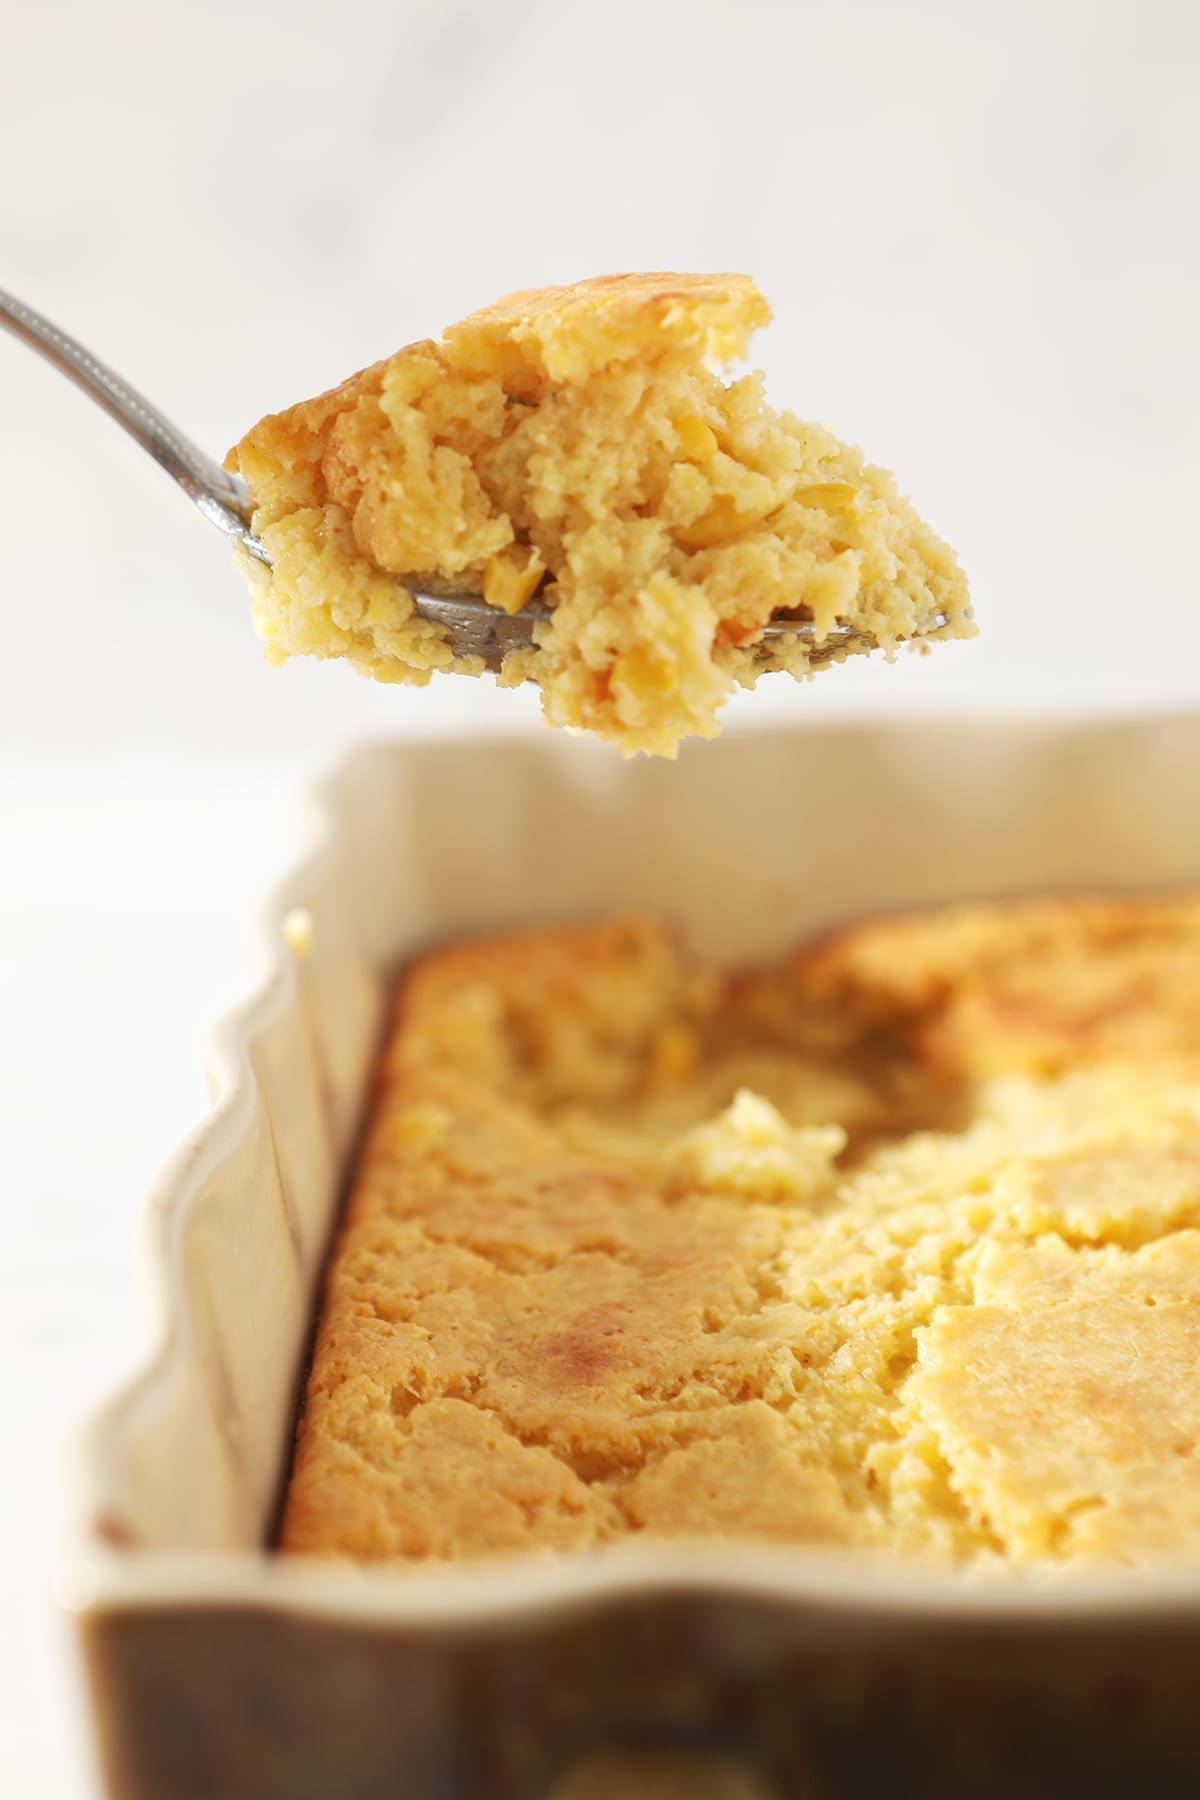 Creamed Cornbread Casserole lifted out of the dish with a silver spoon